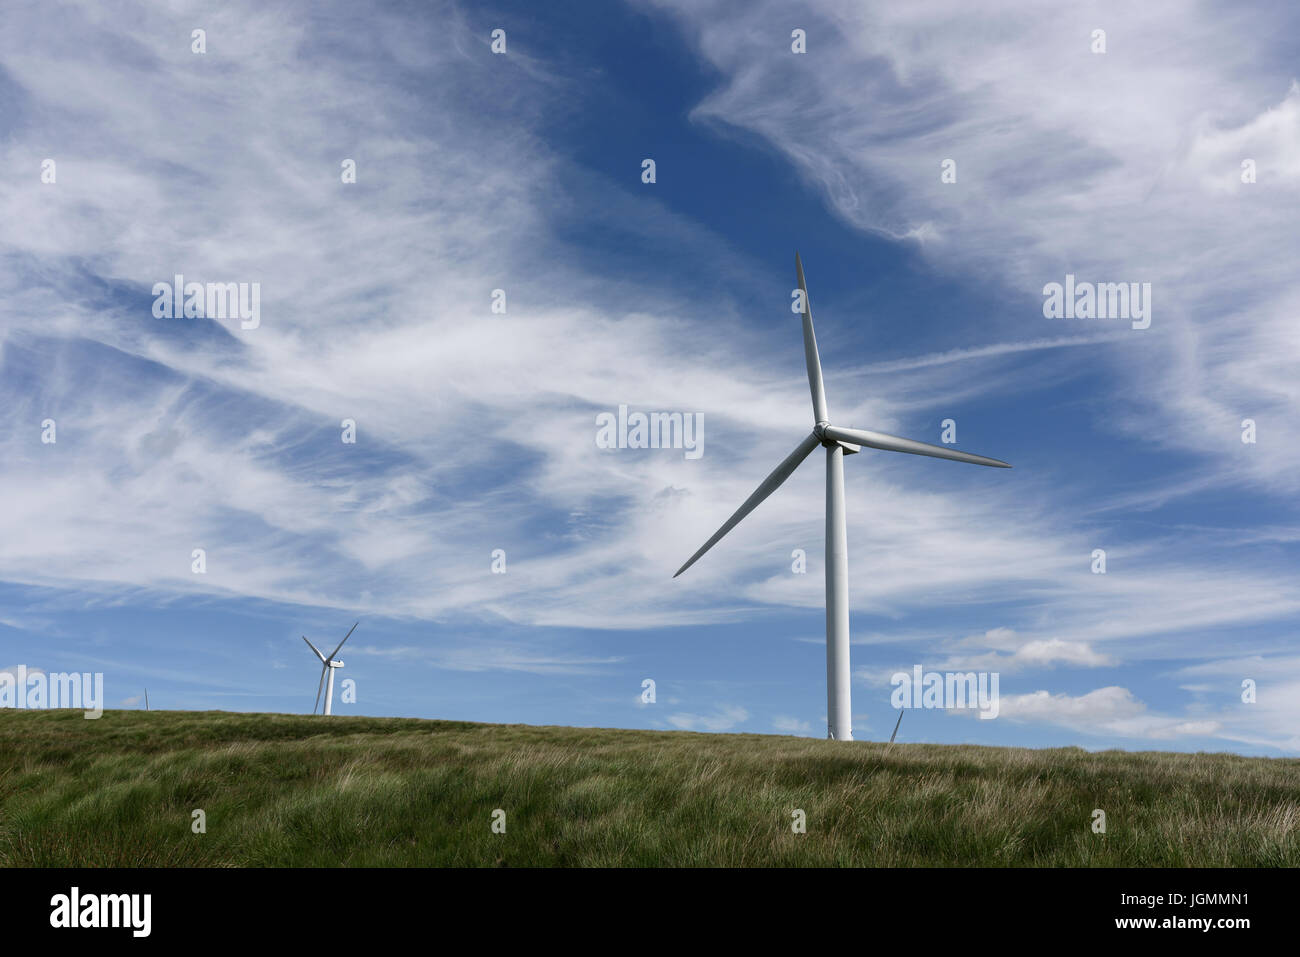 Wind turbine a source of renewable and sustainable energy at scout moor wind farm, with sky filled with wispy cirrus - Stock Image